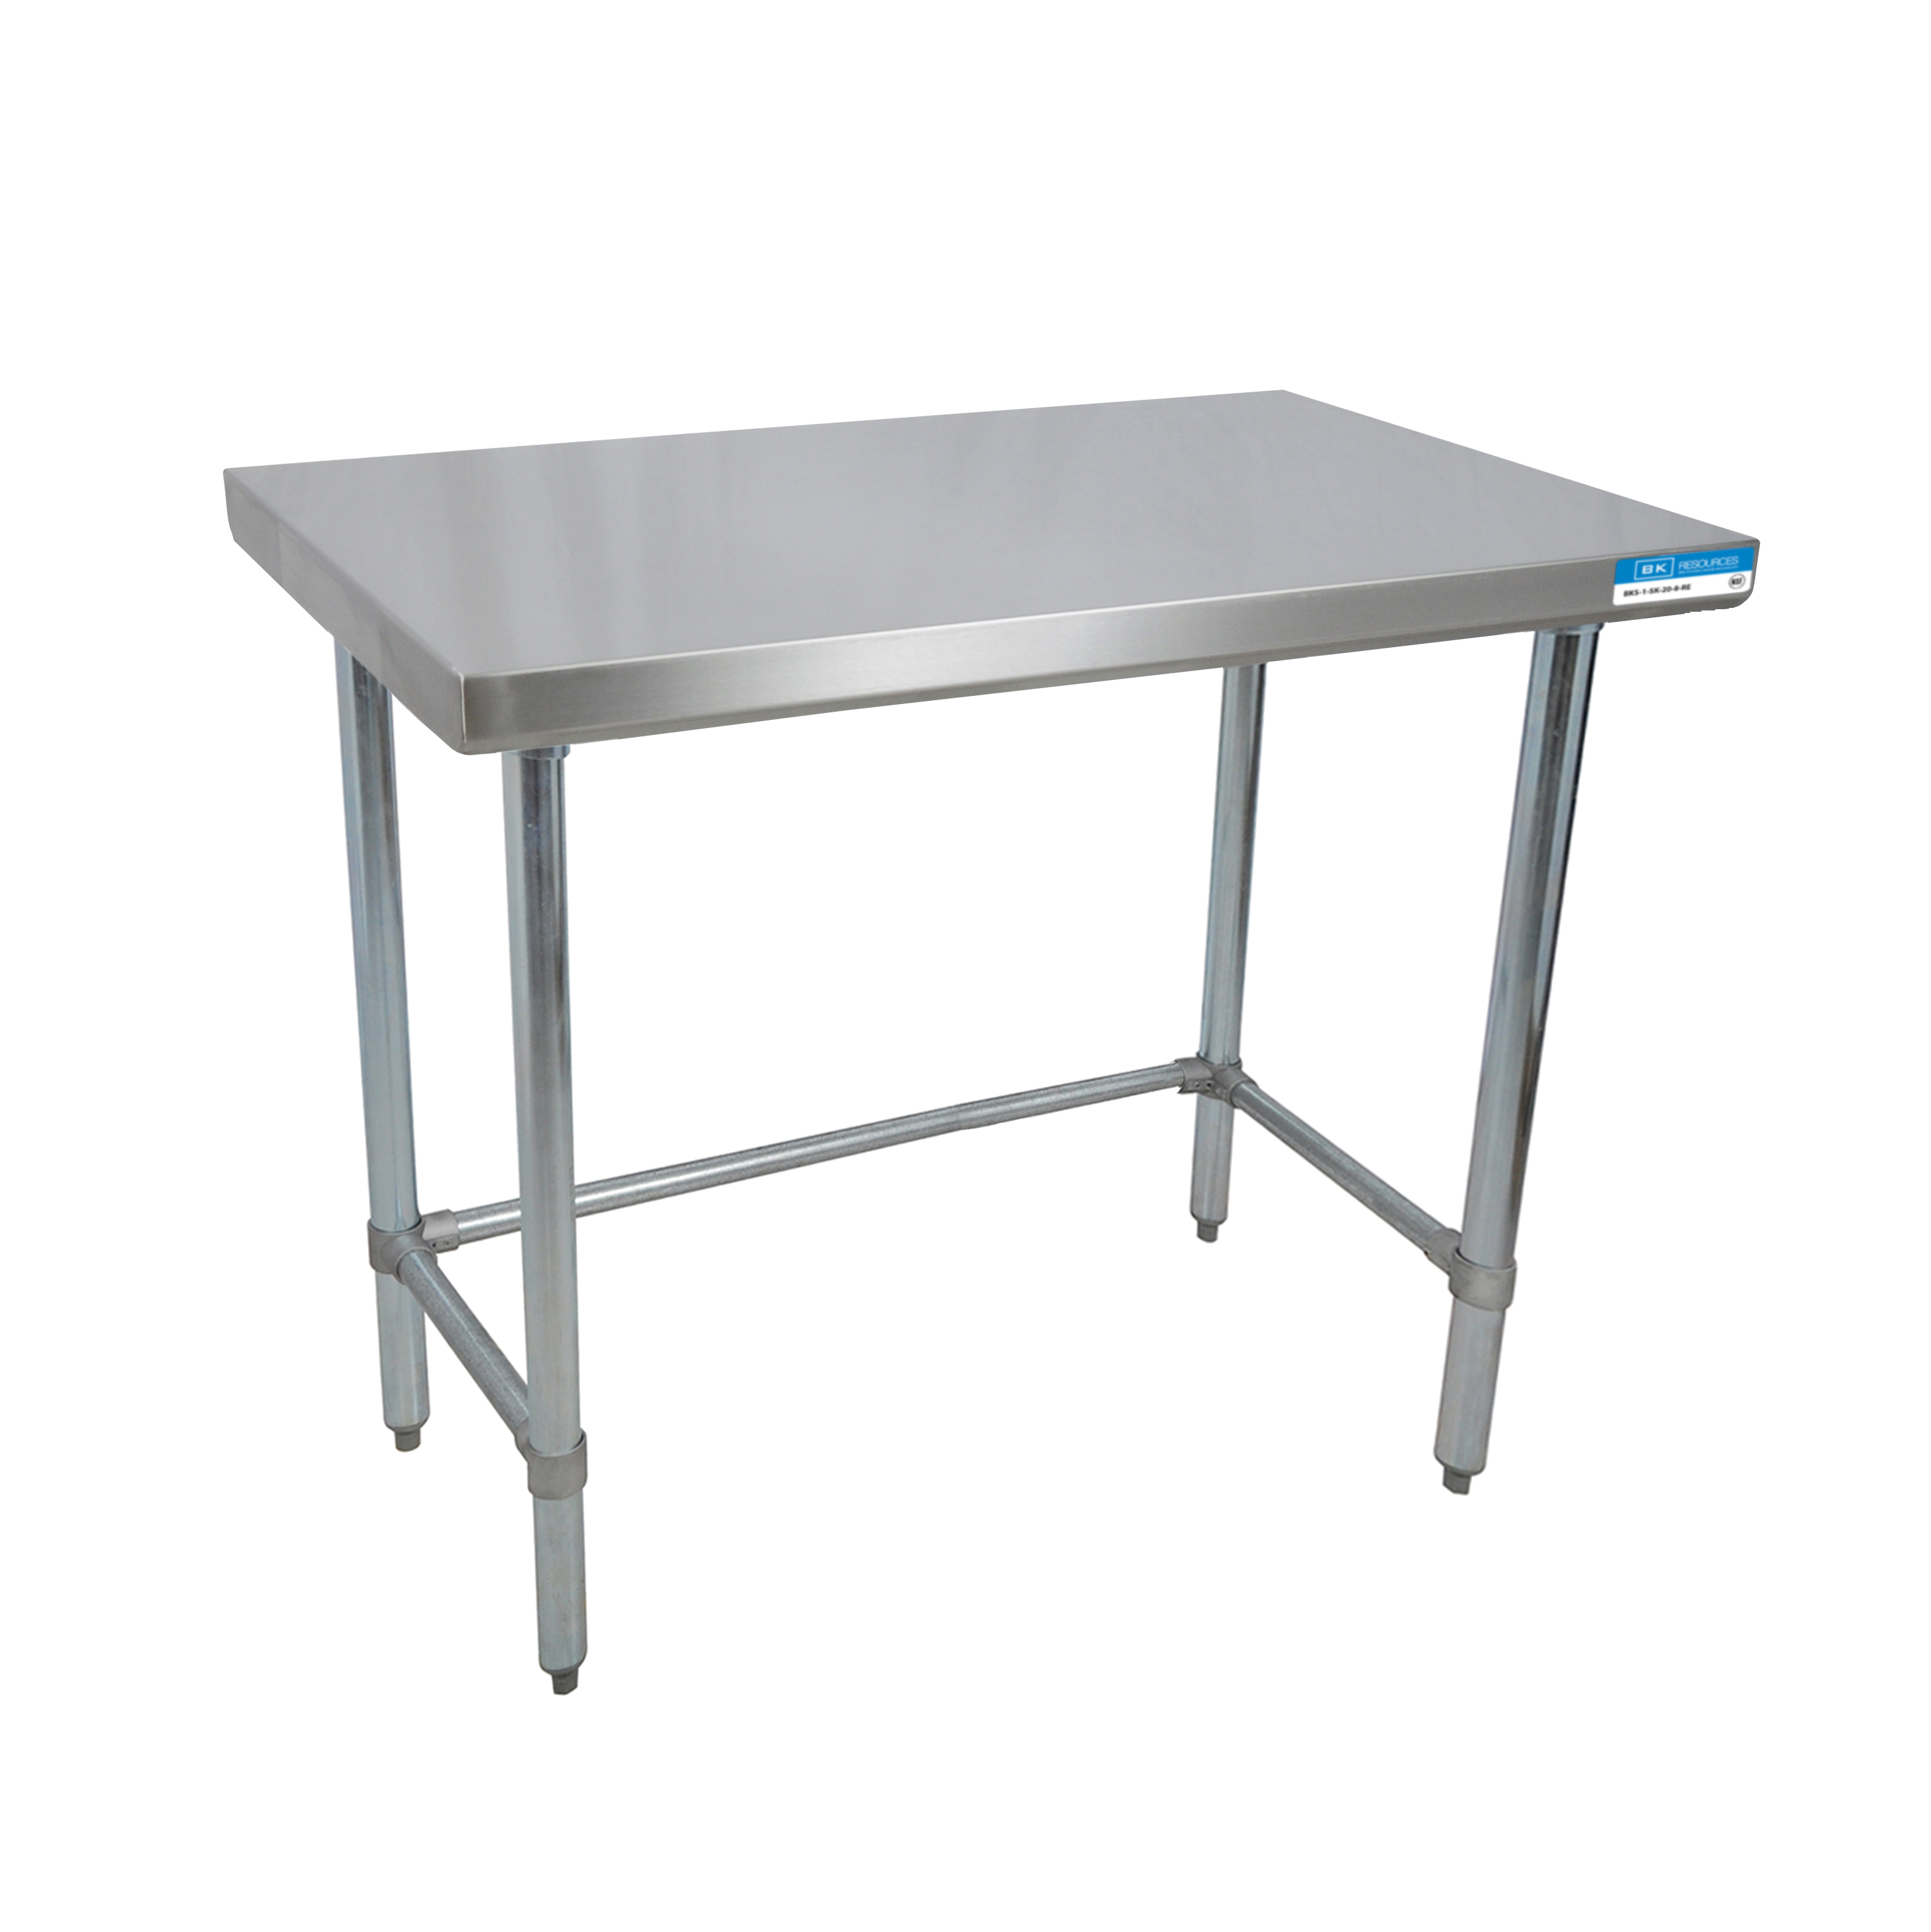 BK Resources CTTOB-3630 work table,  36